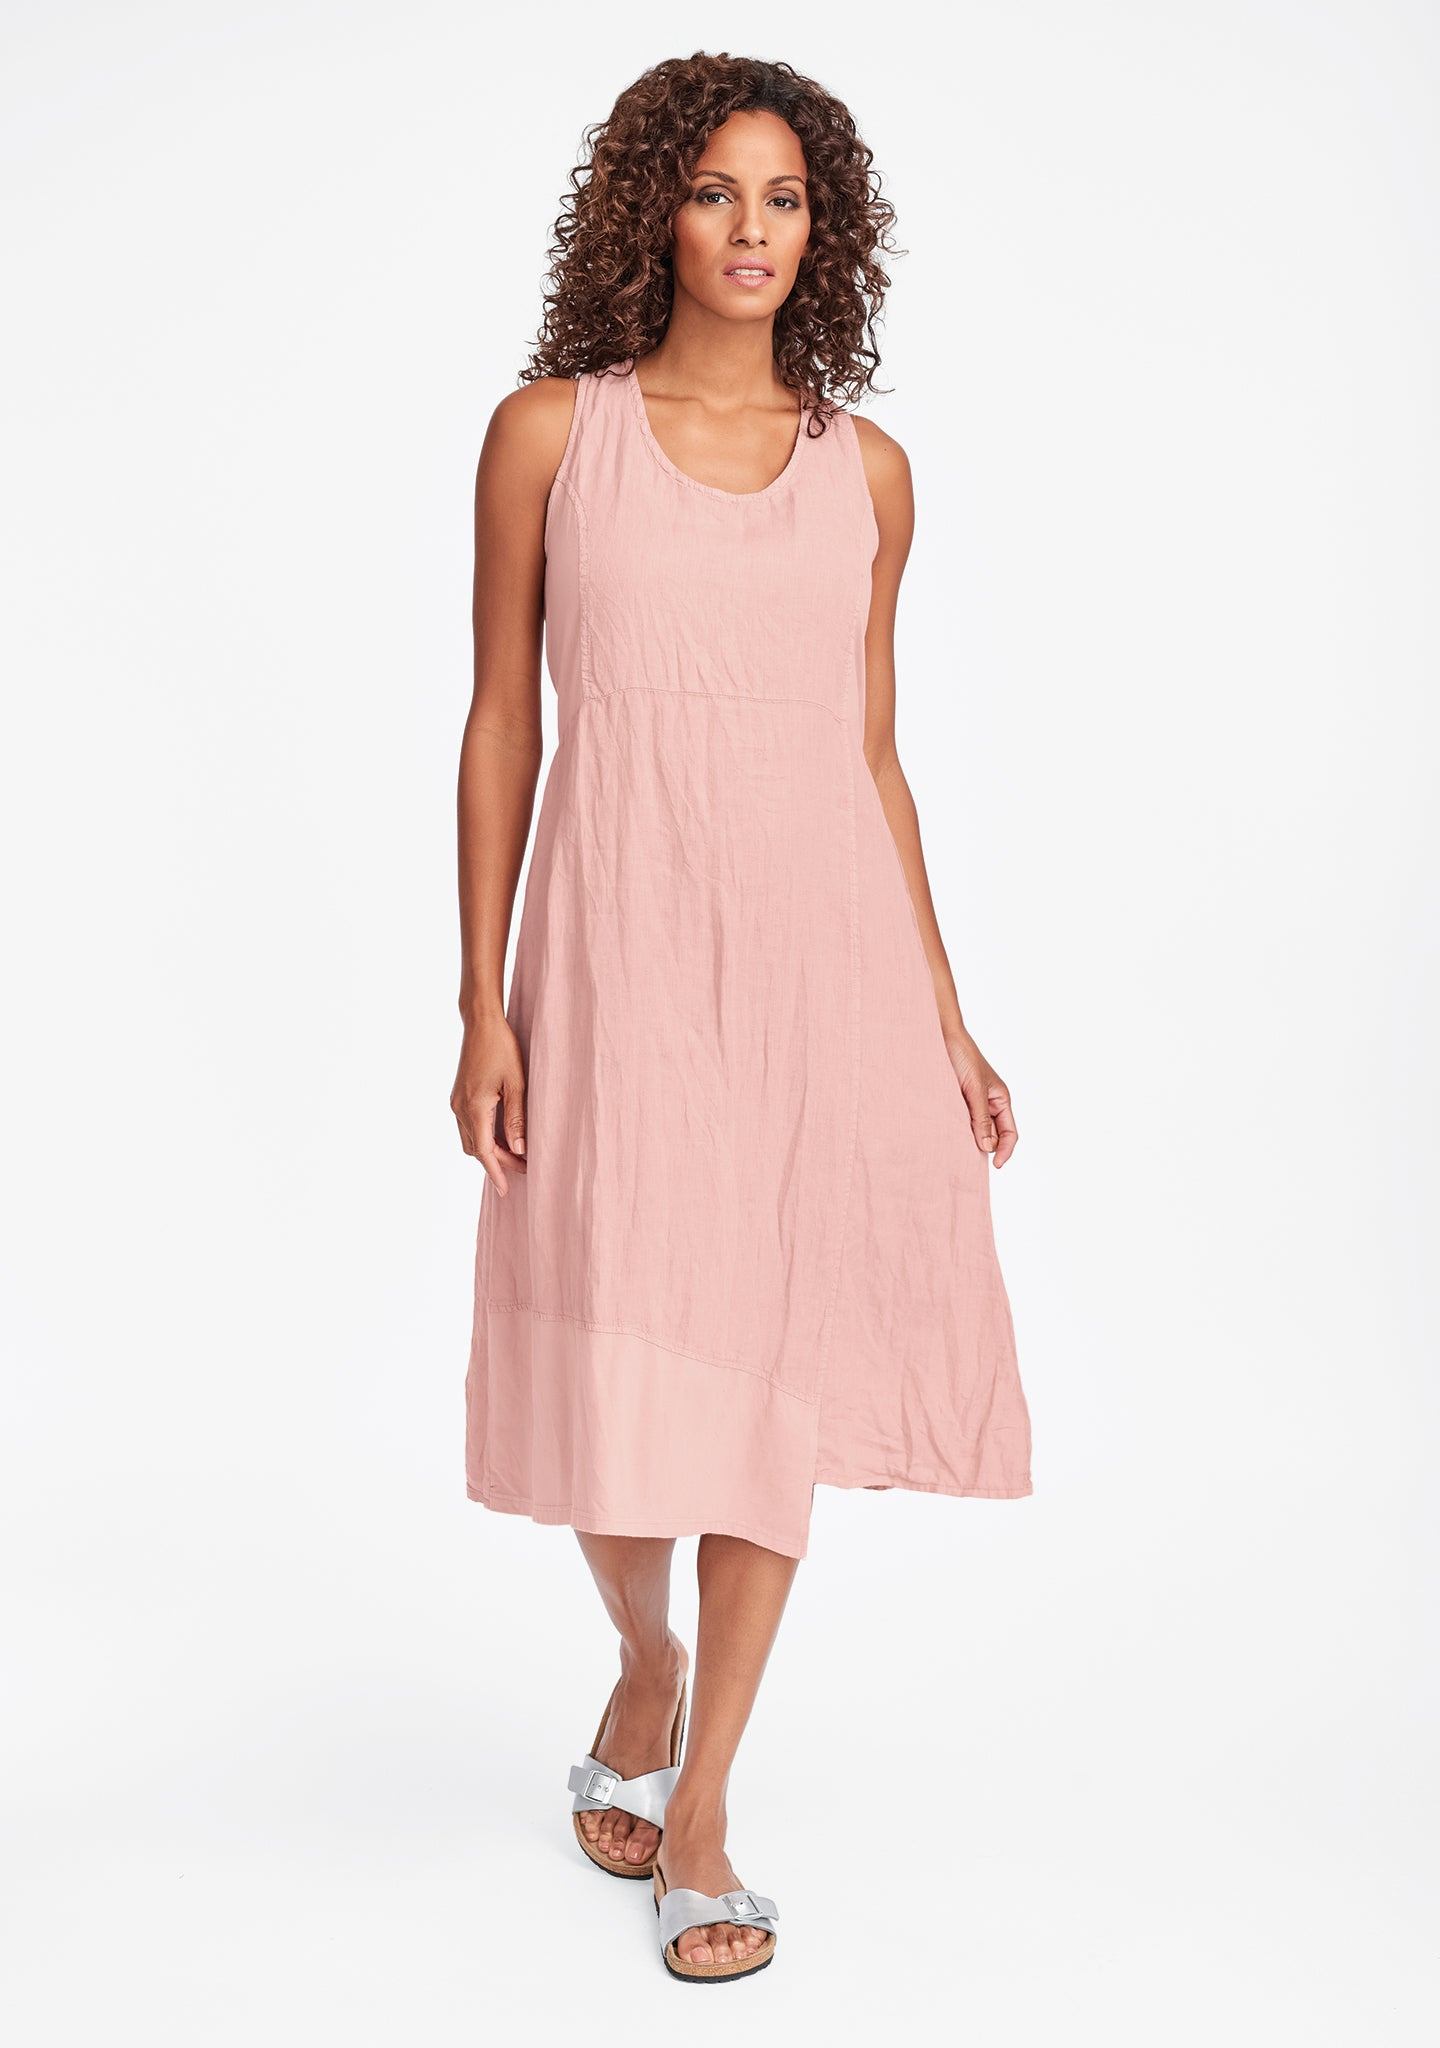 midtown dress linen midi dress pink